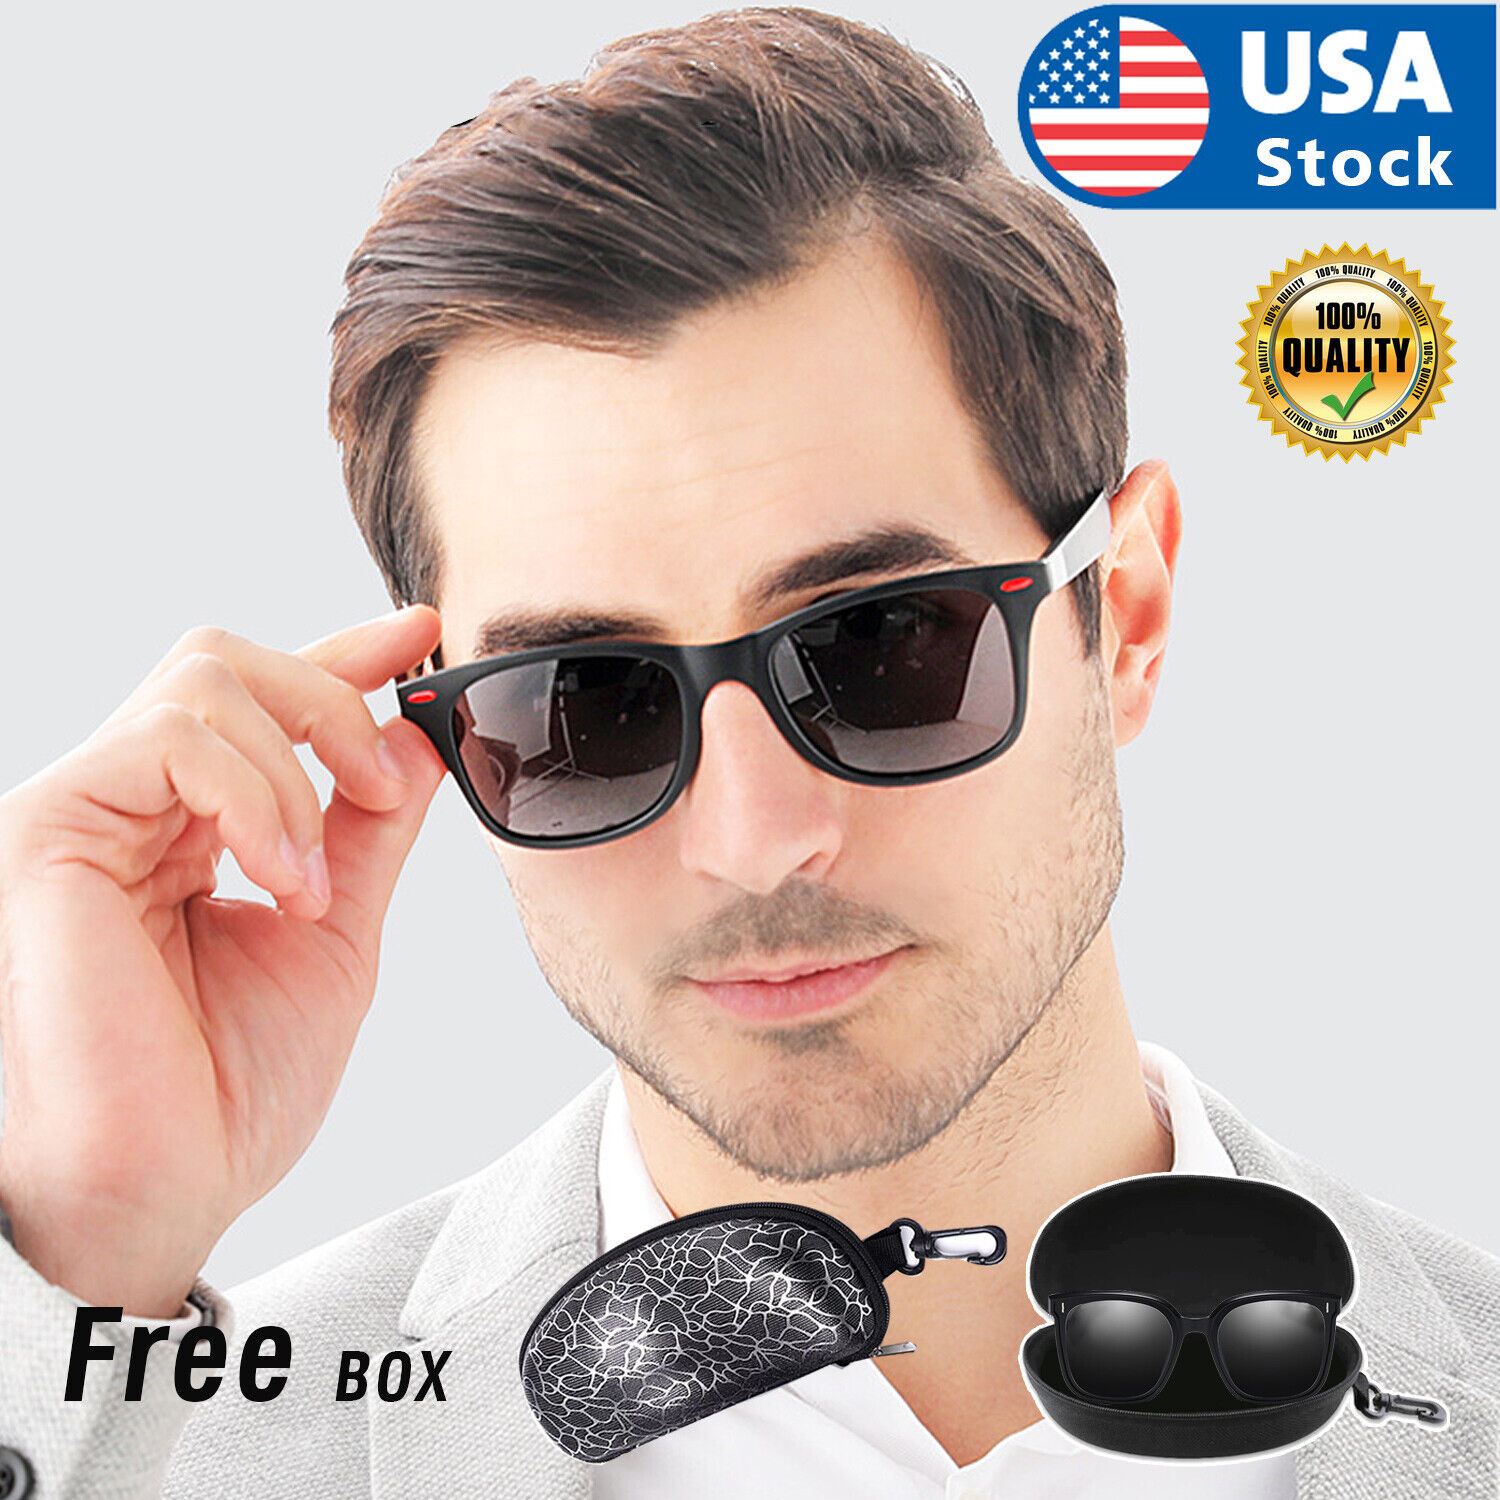 Mens Polarized Sunglasses UV400 Outdoor Sports Driving Fishing Glasses Eyewear Clothing, Shoes & Accessories